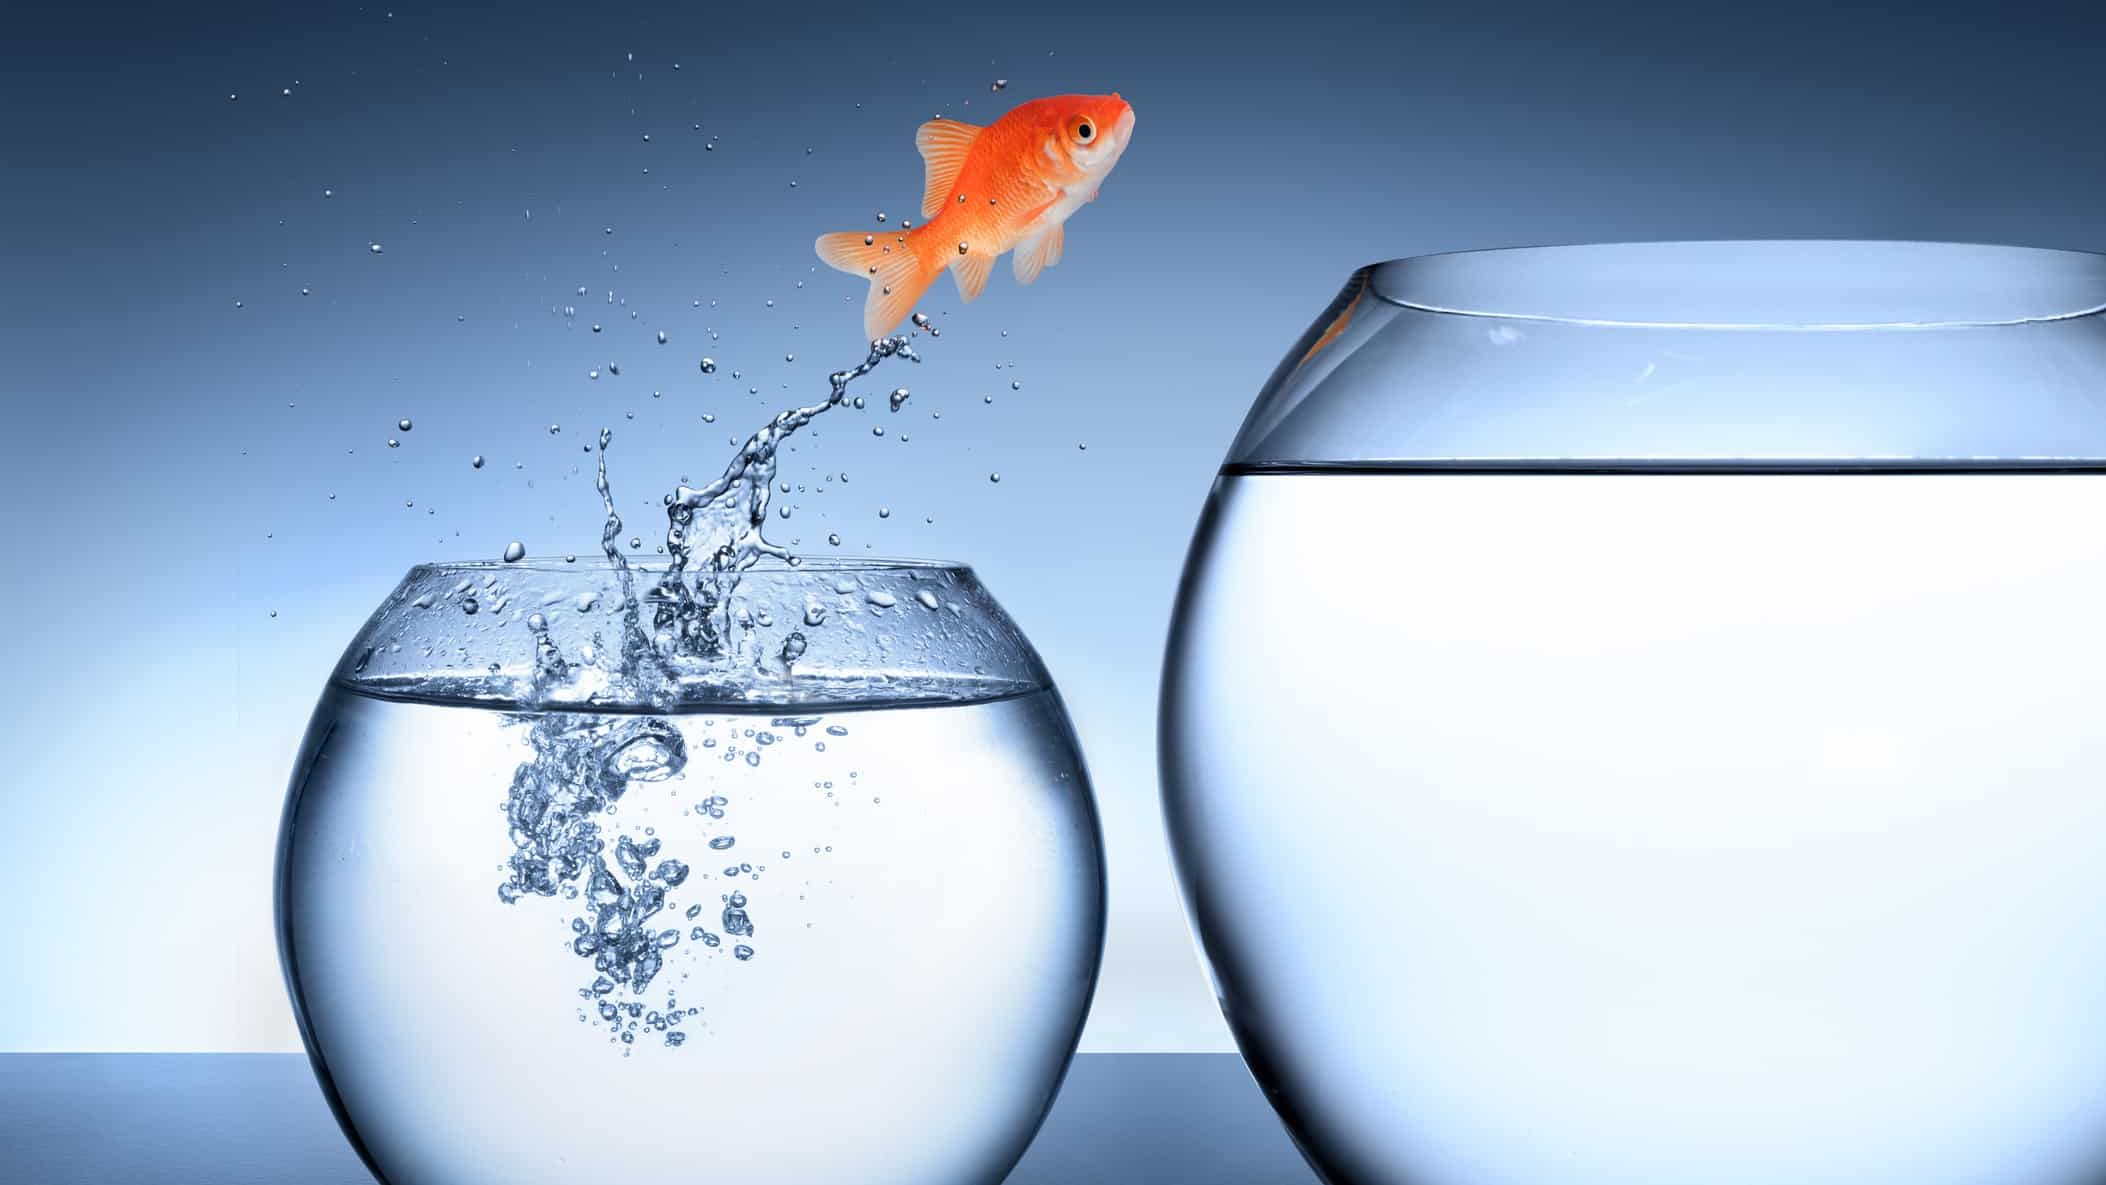 Share price jump represented by goldfish leaping from small fishbowl to larger bowl